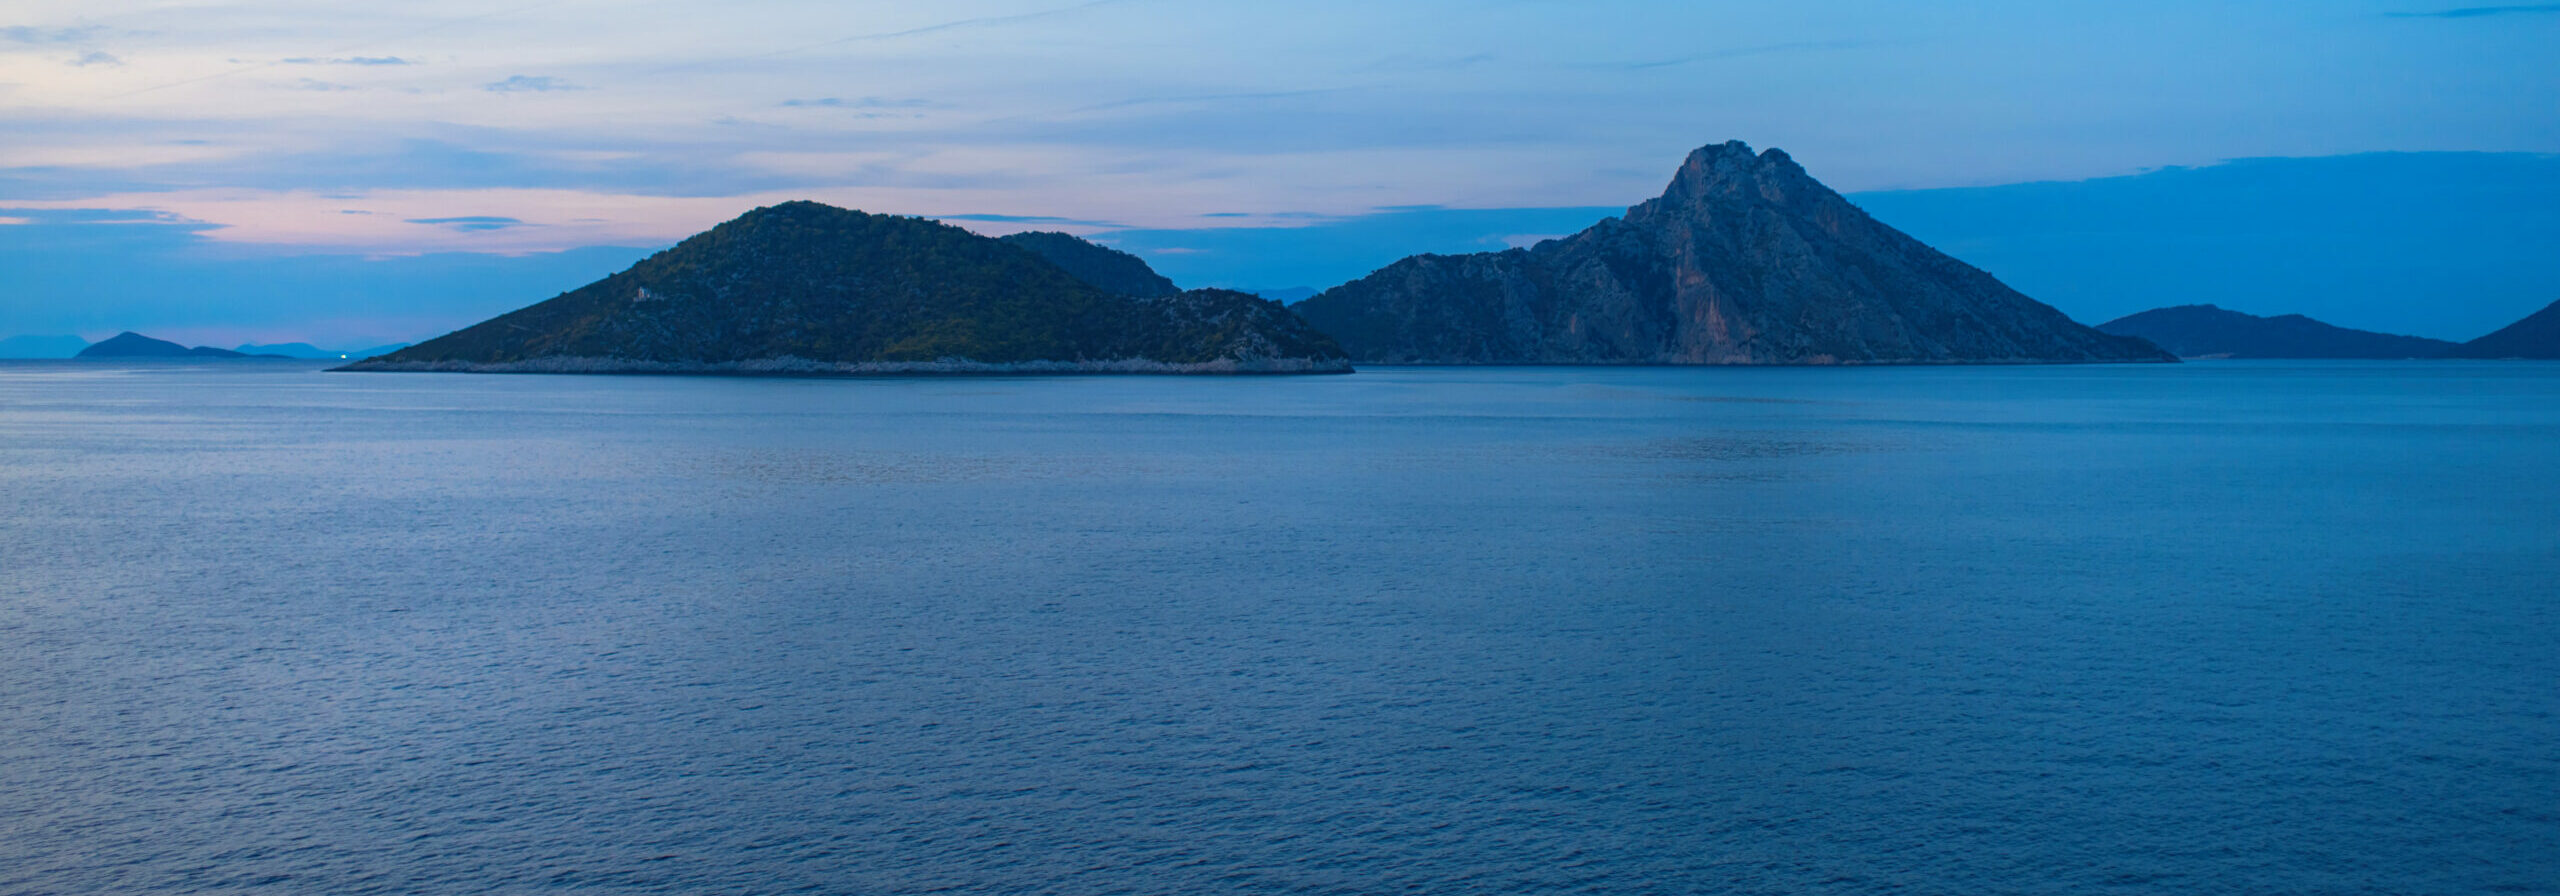 Asteris: The majestic Homeric and majestic island in the Ionian Sea